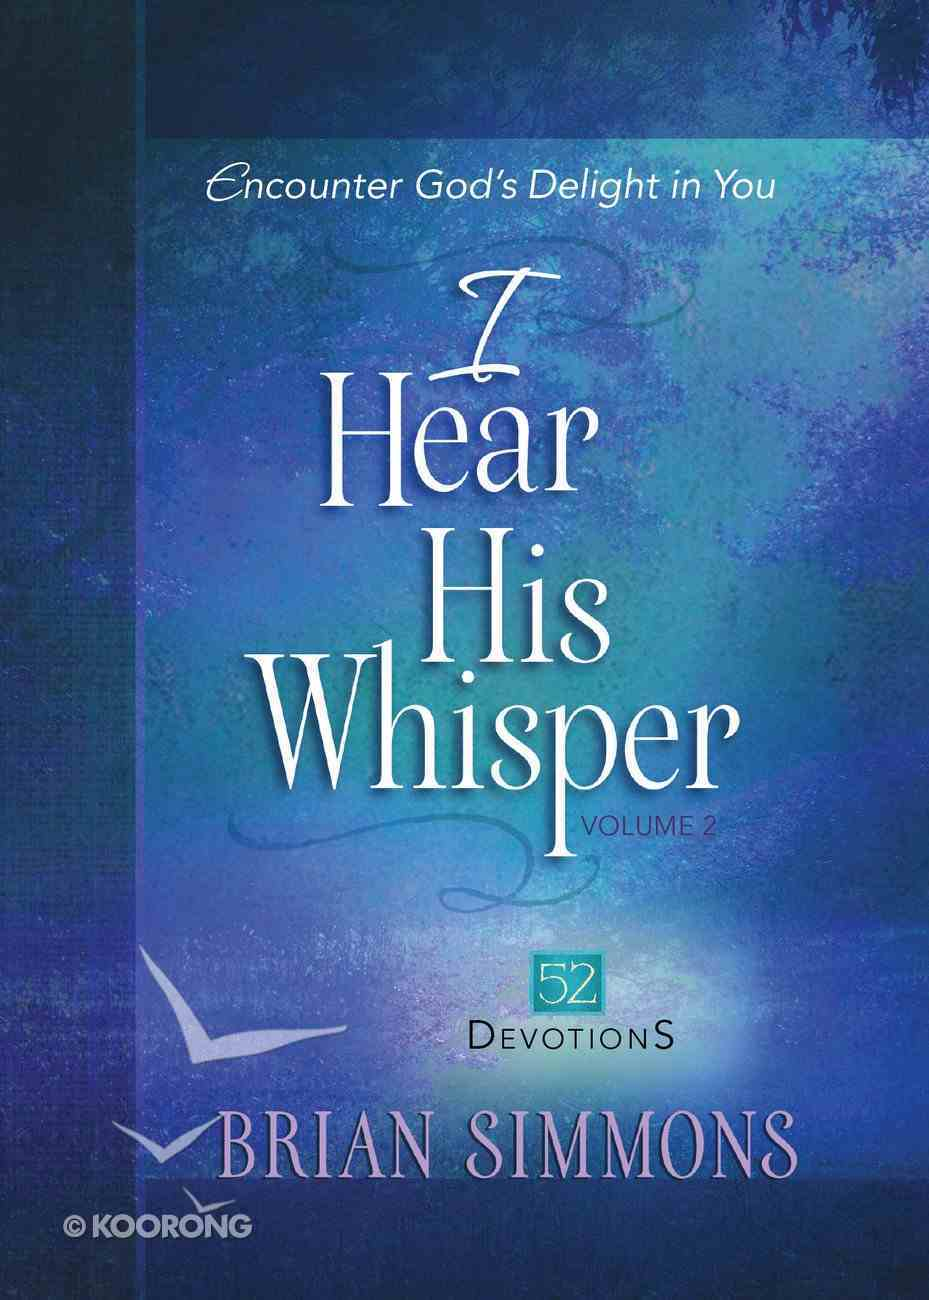 I Hear His Whisper #02: Encounter God's Delight in You (52 Devotions) (The Passion Translation Devotionals Series) eBook